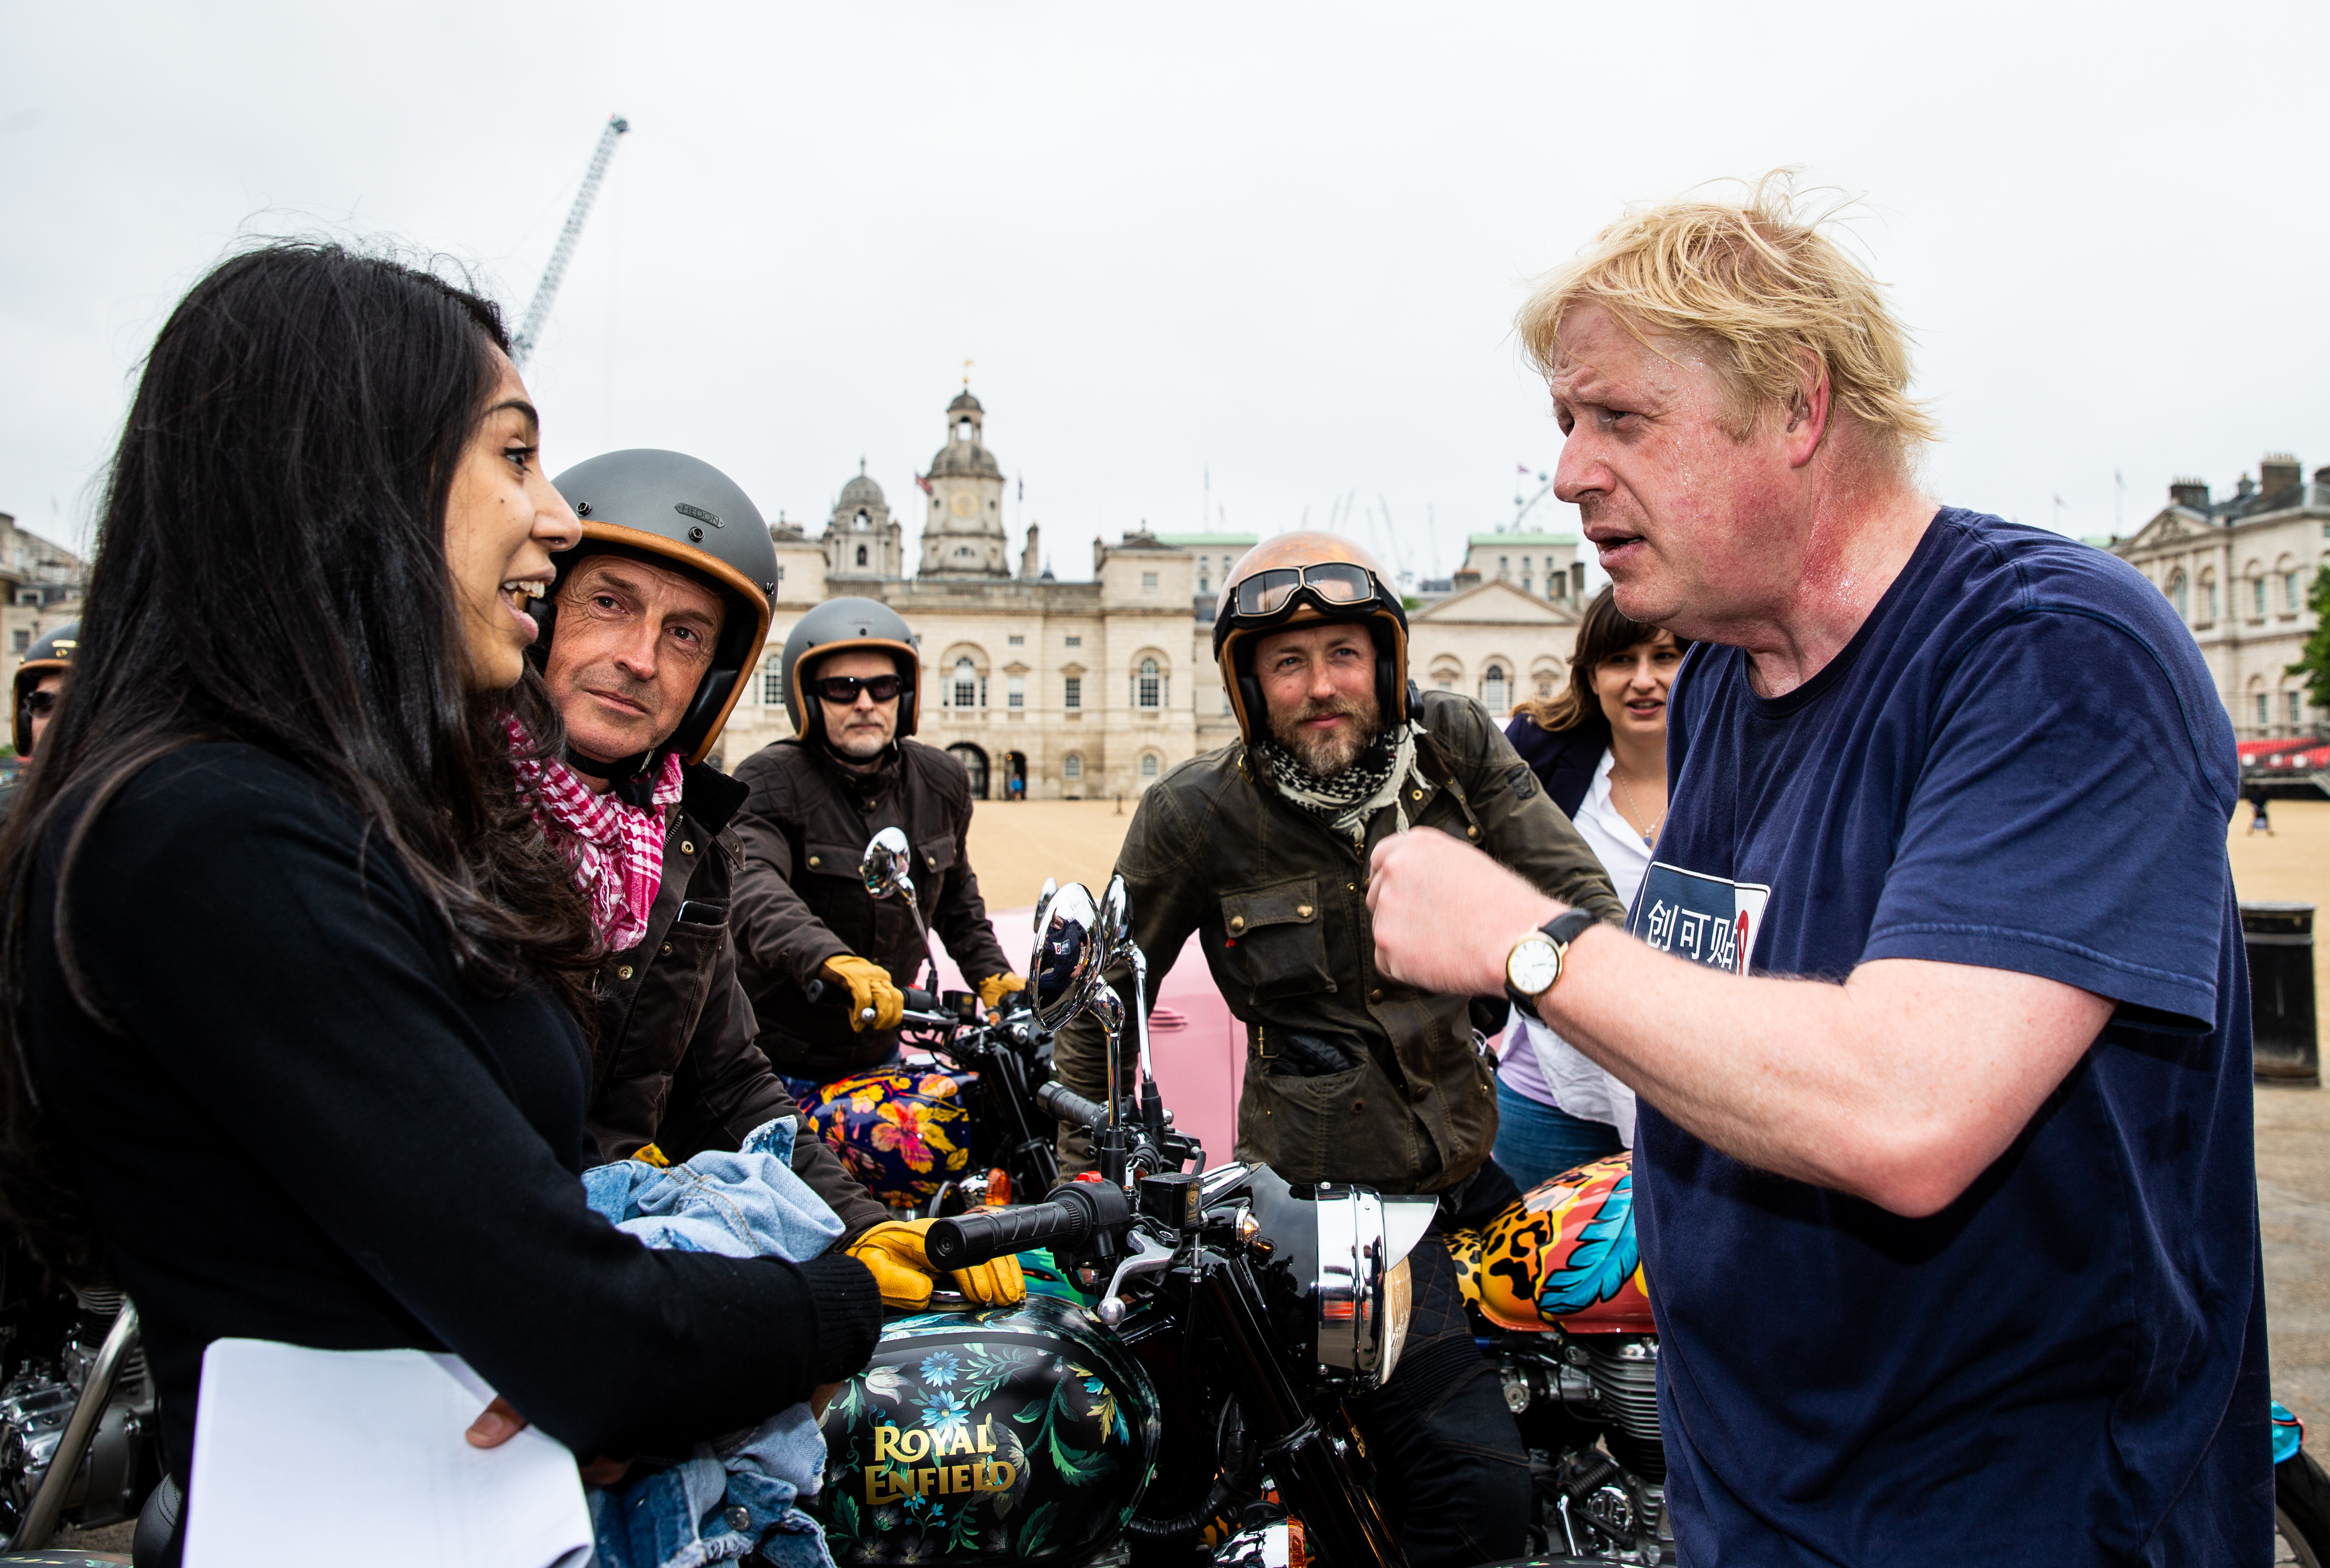 Boris Johnson, Secretary of State for Foreign Affairs chats to Simon de Burton on the House of Hackney bike and Sam Pelly on the Boyarde bike while on Elephant Family's 'Concours d'éléphant' outside Horse Guards during the photocall in London. PRESS ASSOCIATION Photo. Picture date: Tuesday June 12, 2018. A customised fleet of 12 Ambassador cars, eight Royal Enfield motorbikes, a tuk tuk and a Gujarati Chagda made up the 'Concours d'éléphant' - a cavalcade of designer inspired, quintessentially Indian vehicles - while thirty beautifully decorated elephant sculptures will stand sentinel across the capital, ambassadors for their cousins in the wild. Boris Johnson, Secretary of State for Foreign Affairs chats to Simon de Burton on the House of Hackney bike and Sam Pelly on the Boyarde bike while on Elephant Family's 'Concours d'éléphant' outside Horse Guards during the photocall in London. PRESS ASSOCIATION Photo. Picture date: Tuesday June 12, 2018. A customised fleet of 12 Ambassador cars, eight Royal Enfield motorbikes, a tuk tuk and a Gujarati Chagda made up the 'Concours d'éléphant' - a cavalcade of designer inspired, quintessentially Indian vehicles - while thirty beautifully decorated elephant sculptures will stand sentinel across the capital, ambassadors for their cousins in the wild.